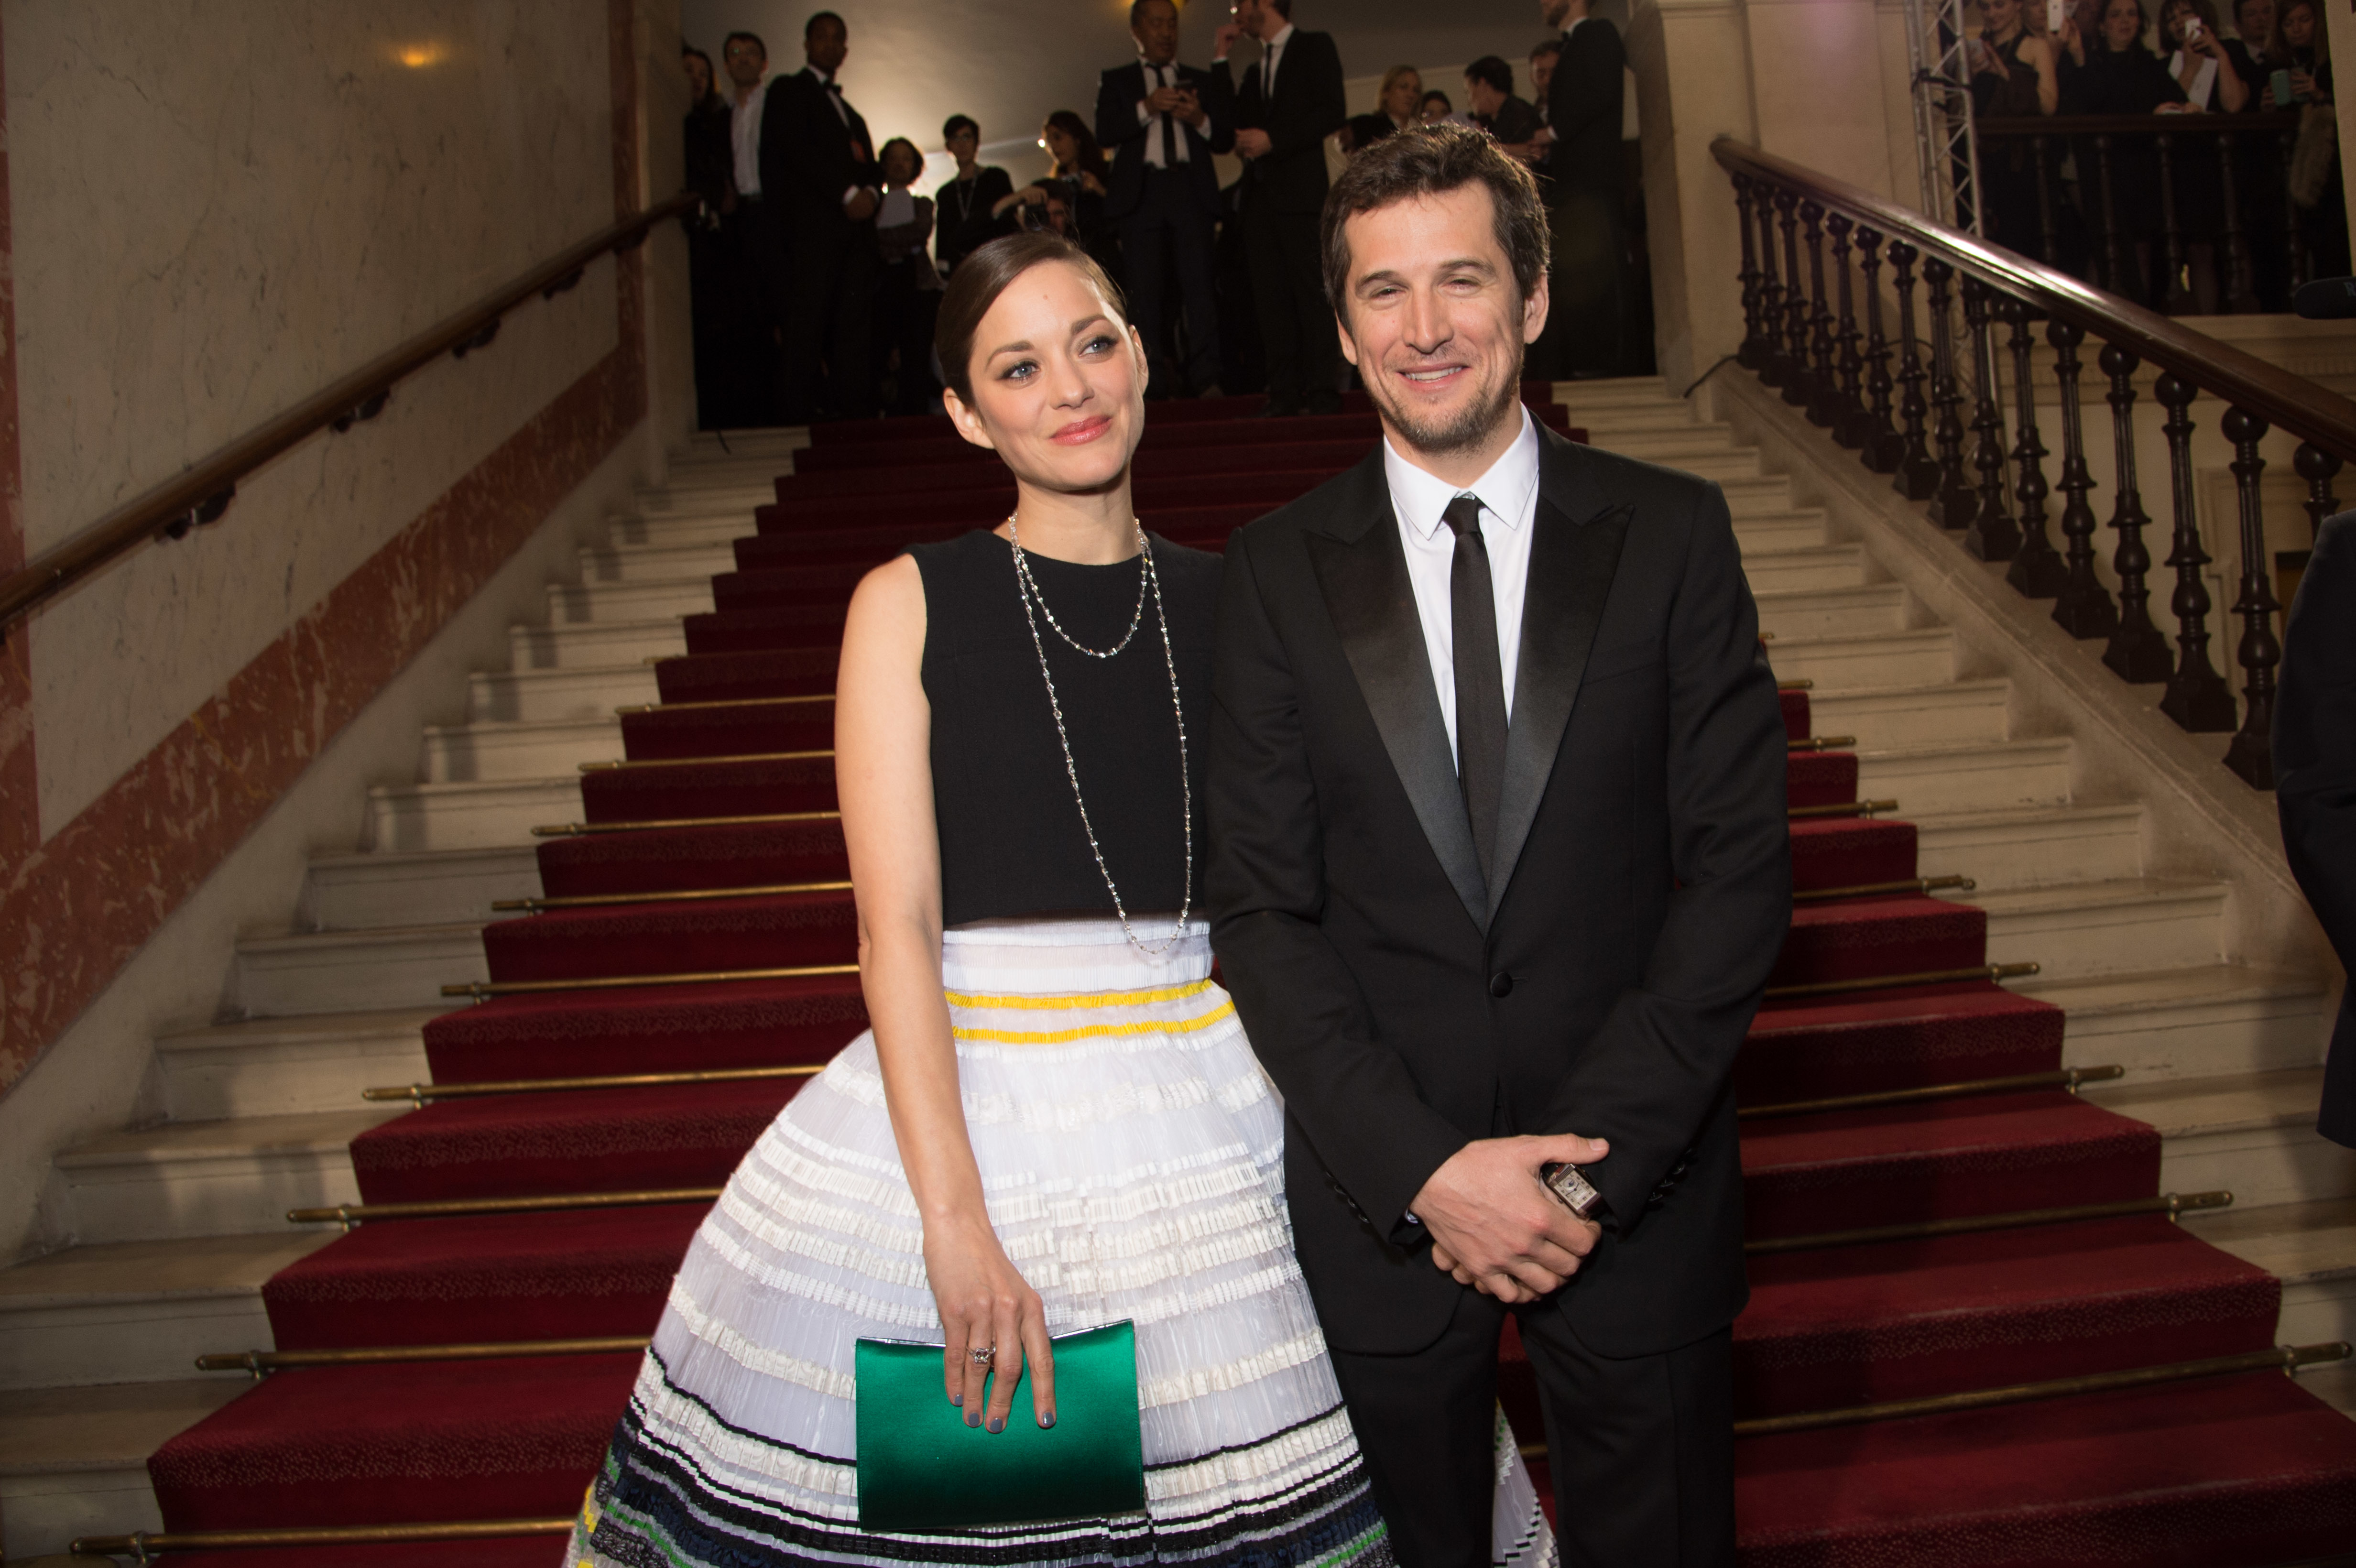 (L-R) Marion Cotillard and Guillaume Canet arrive at the 40th Cesar Film Awards 2015 Cocktail at Theatre du Chatelet on February 20, 2015 in Paris, France. (Photo by Stephane Cardinale/Corbis via Getty Images)